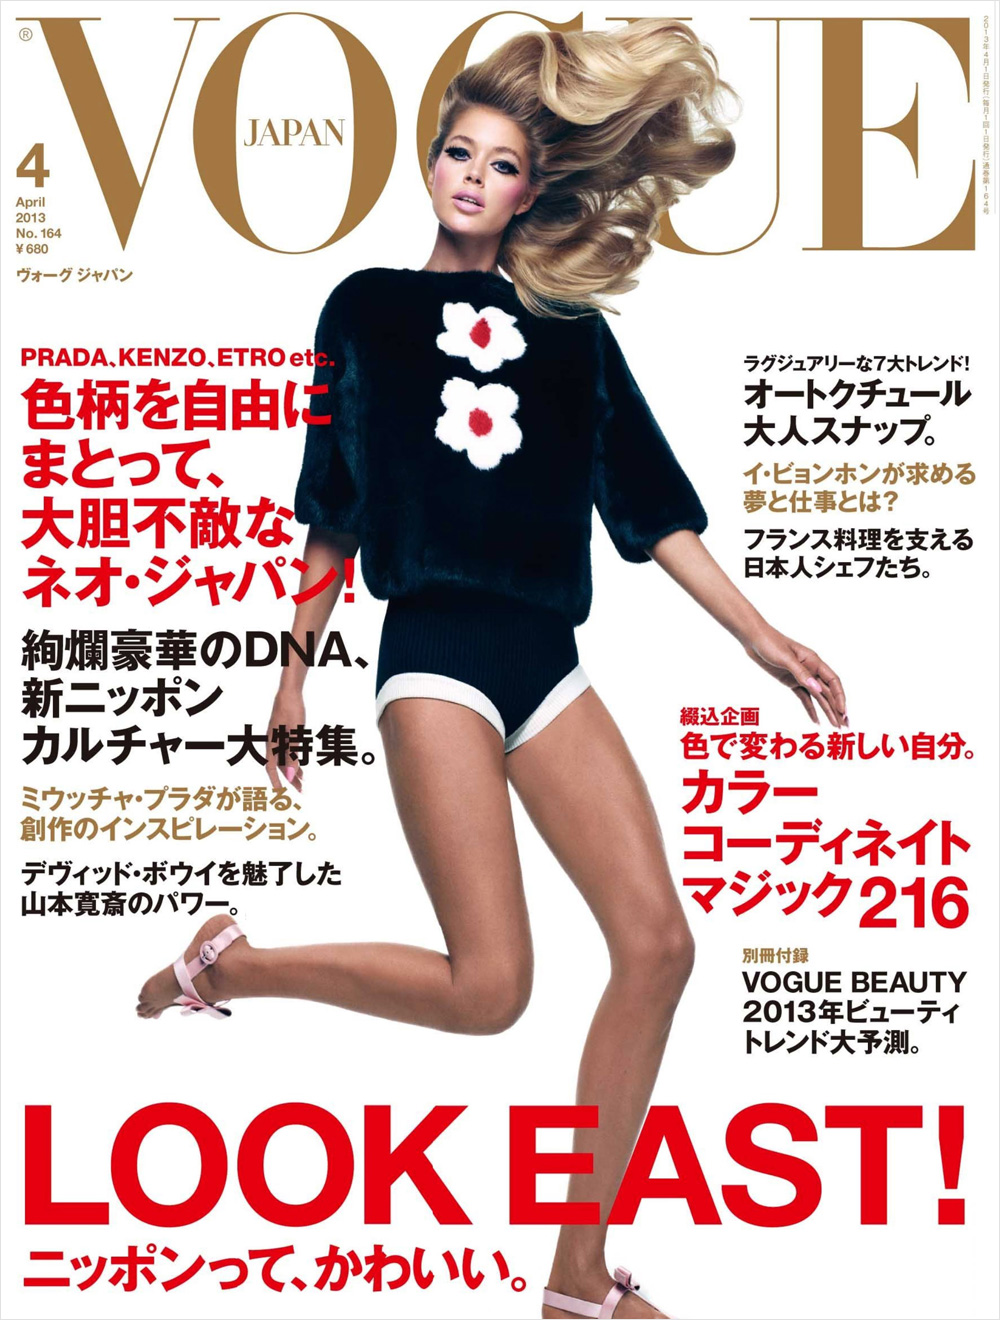 supermodel doutzen kroes grabs yet another vogue cover this time